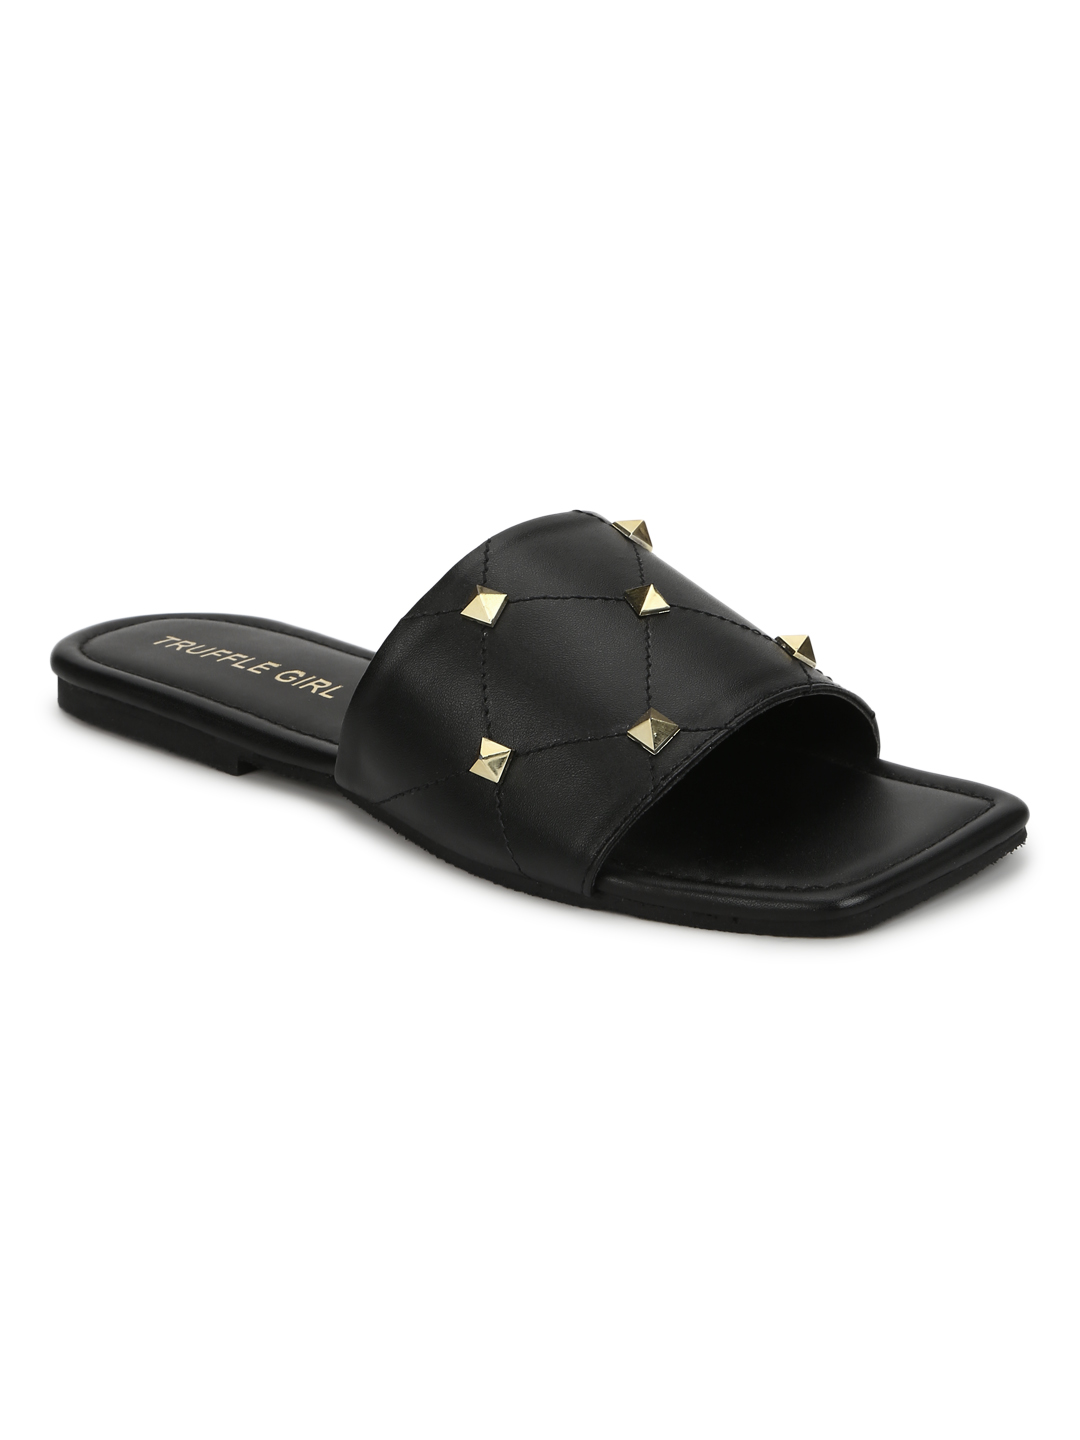 Truffle Collection | Truffle Collection Black PU Studded Slides